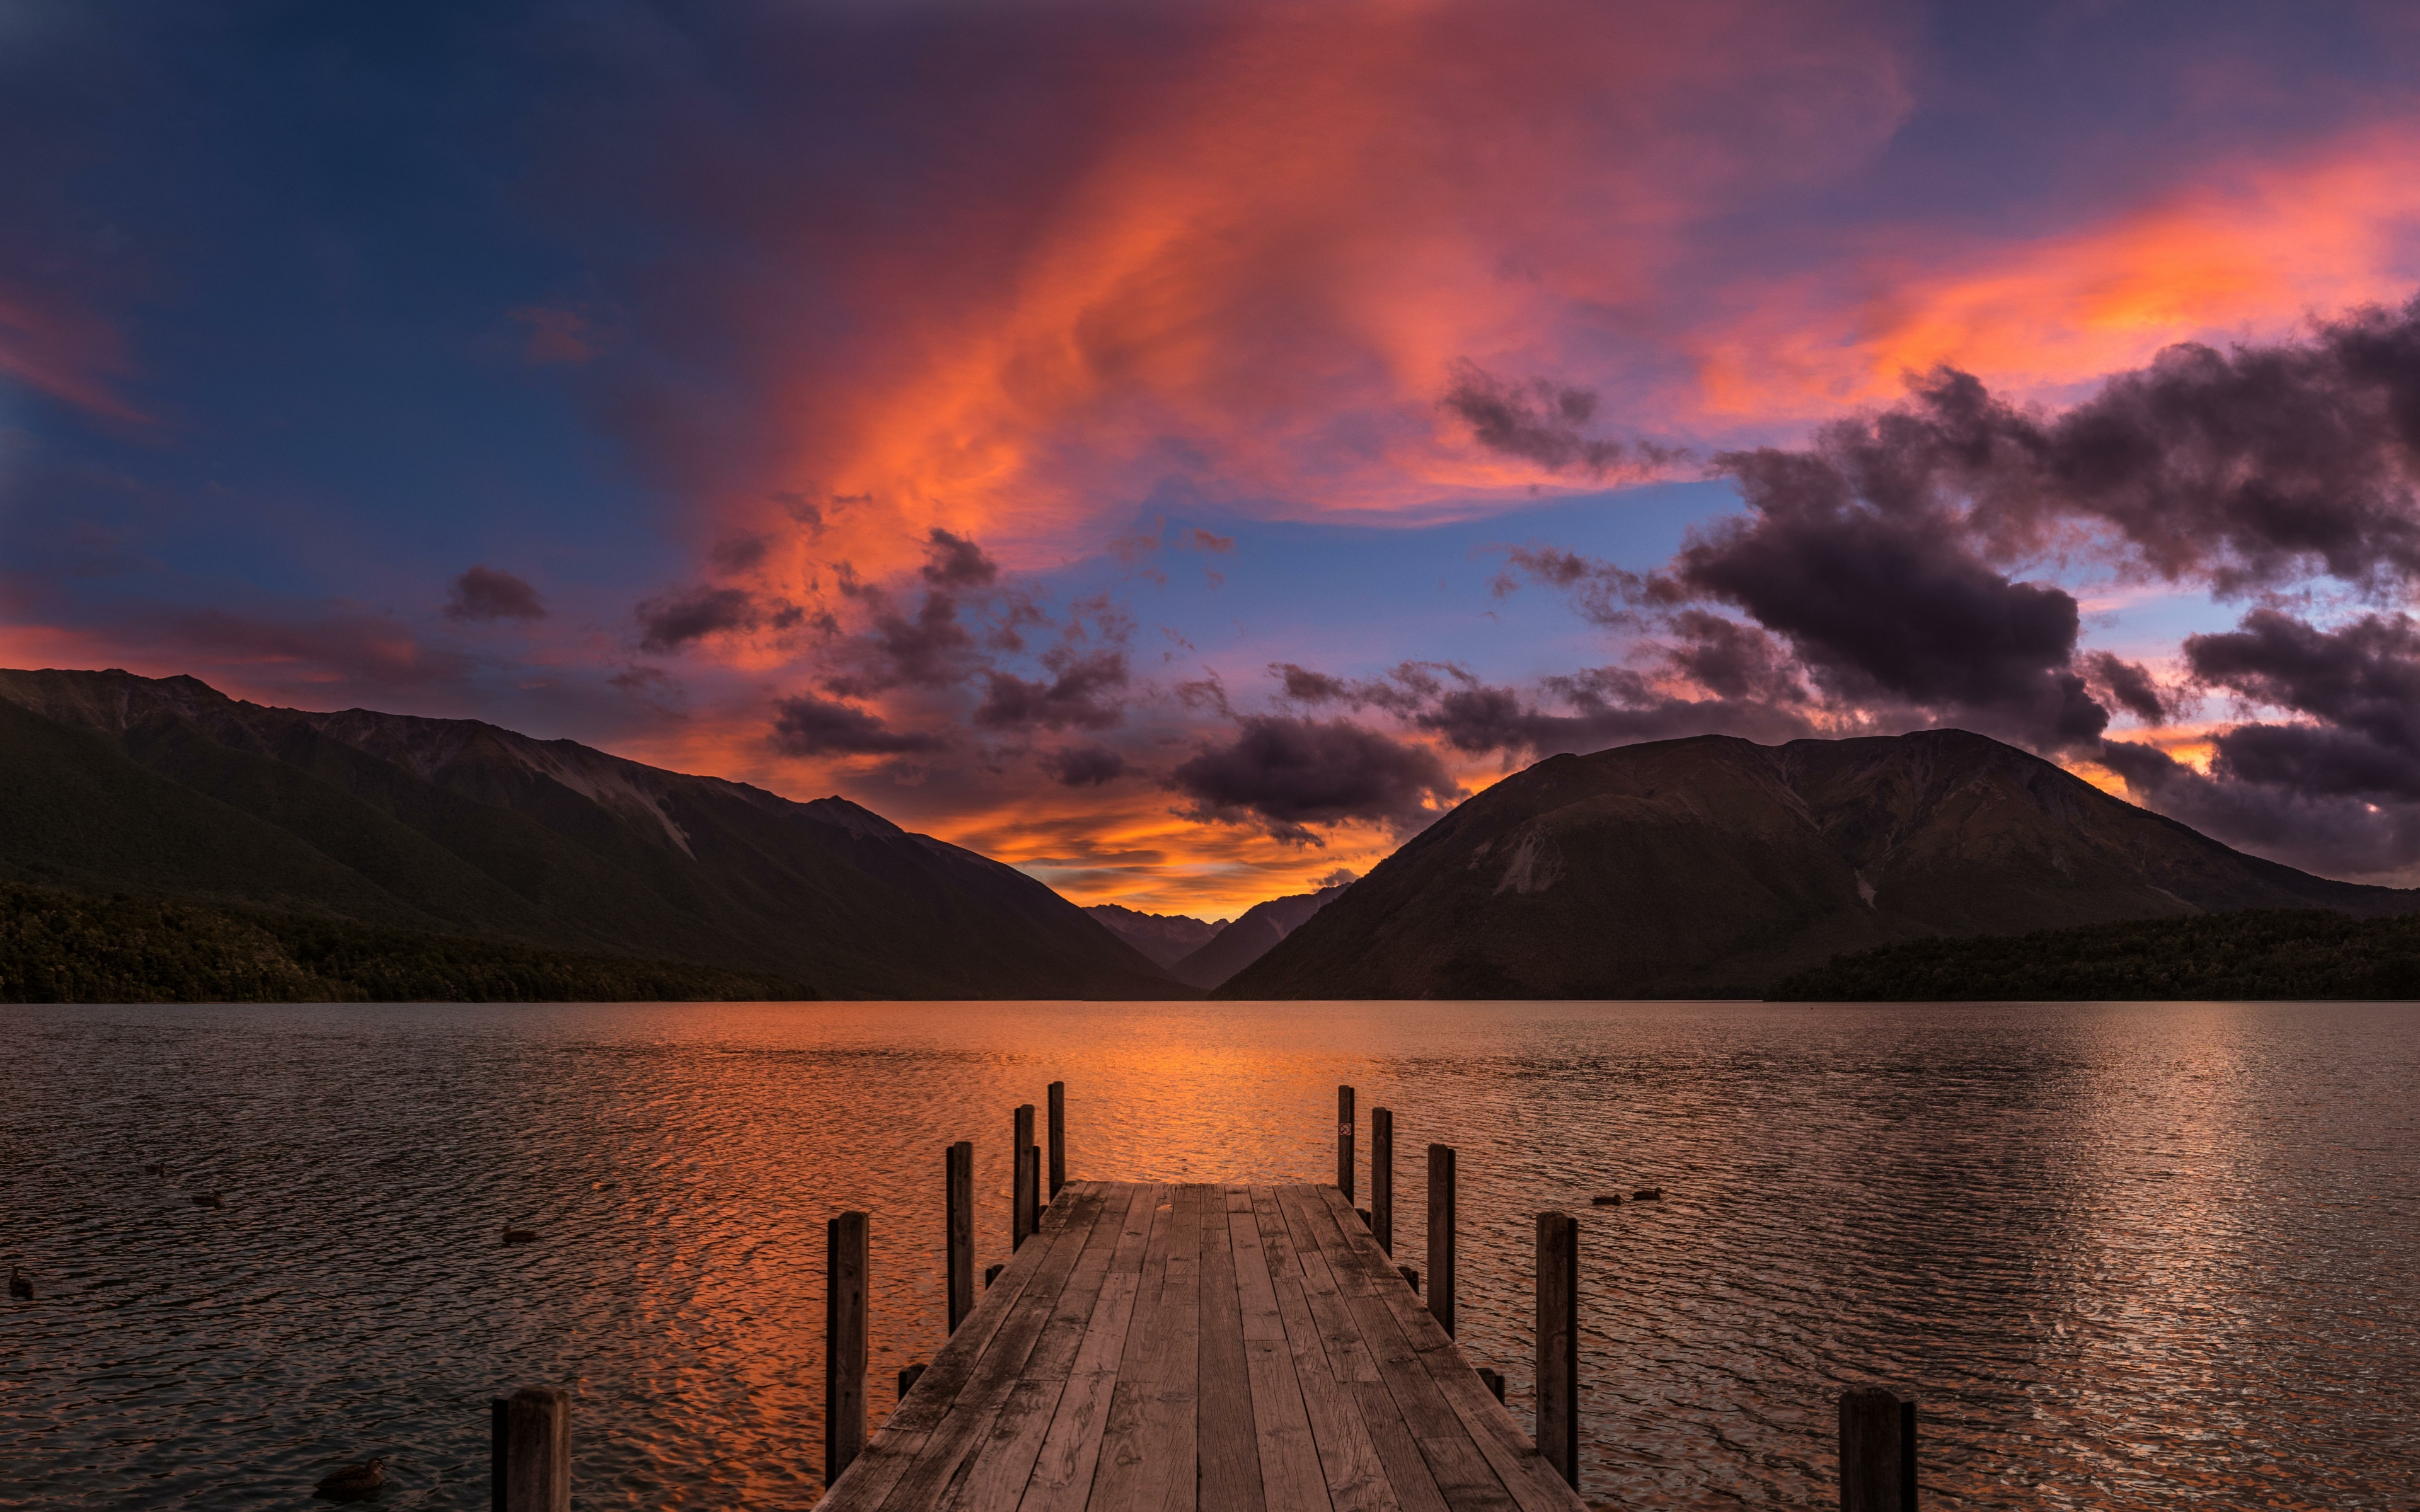 Nz Shooting Video Wallpaper: Sunset At Lake Rotoiti New Zealand, HD 8K Wallpaper